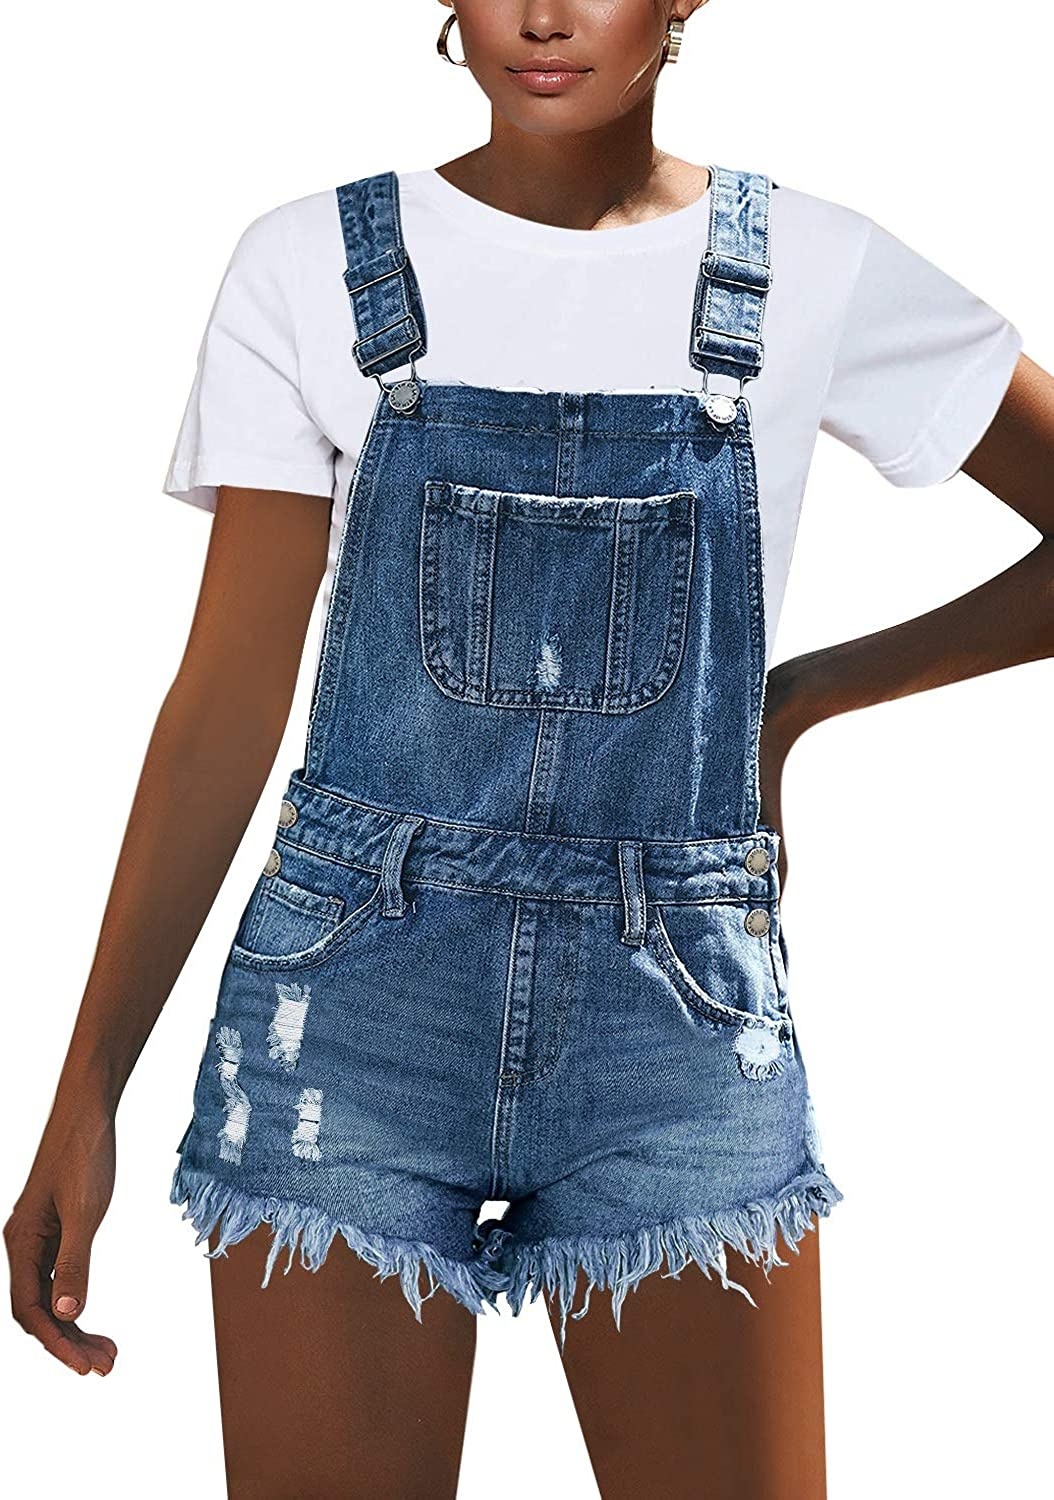 luvamia Womens Ripped Short Overalls Adjustable Denim Bib Overall Shorts Romper